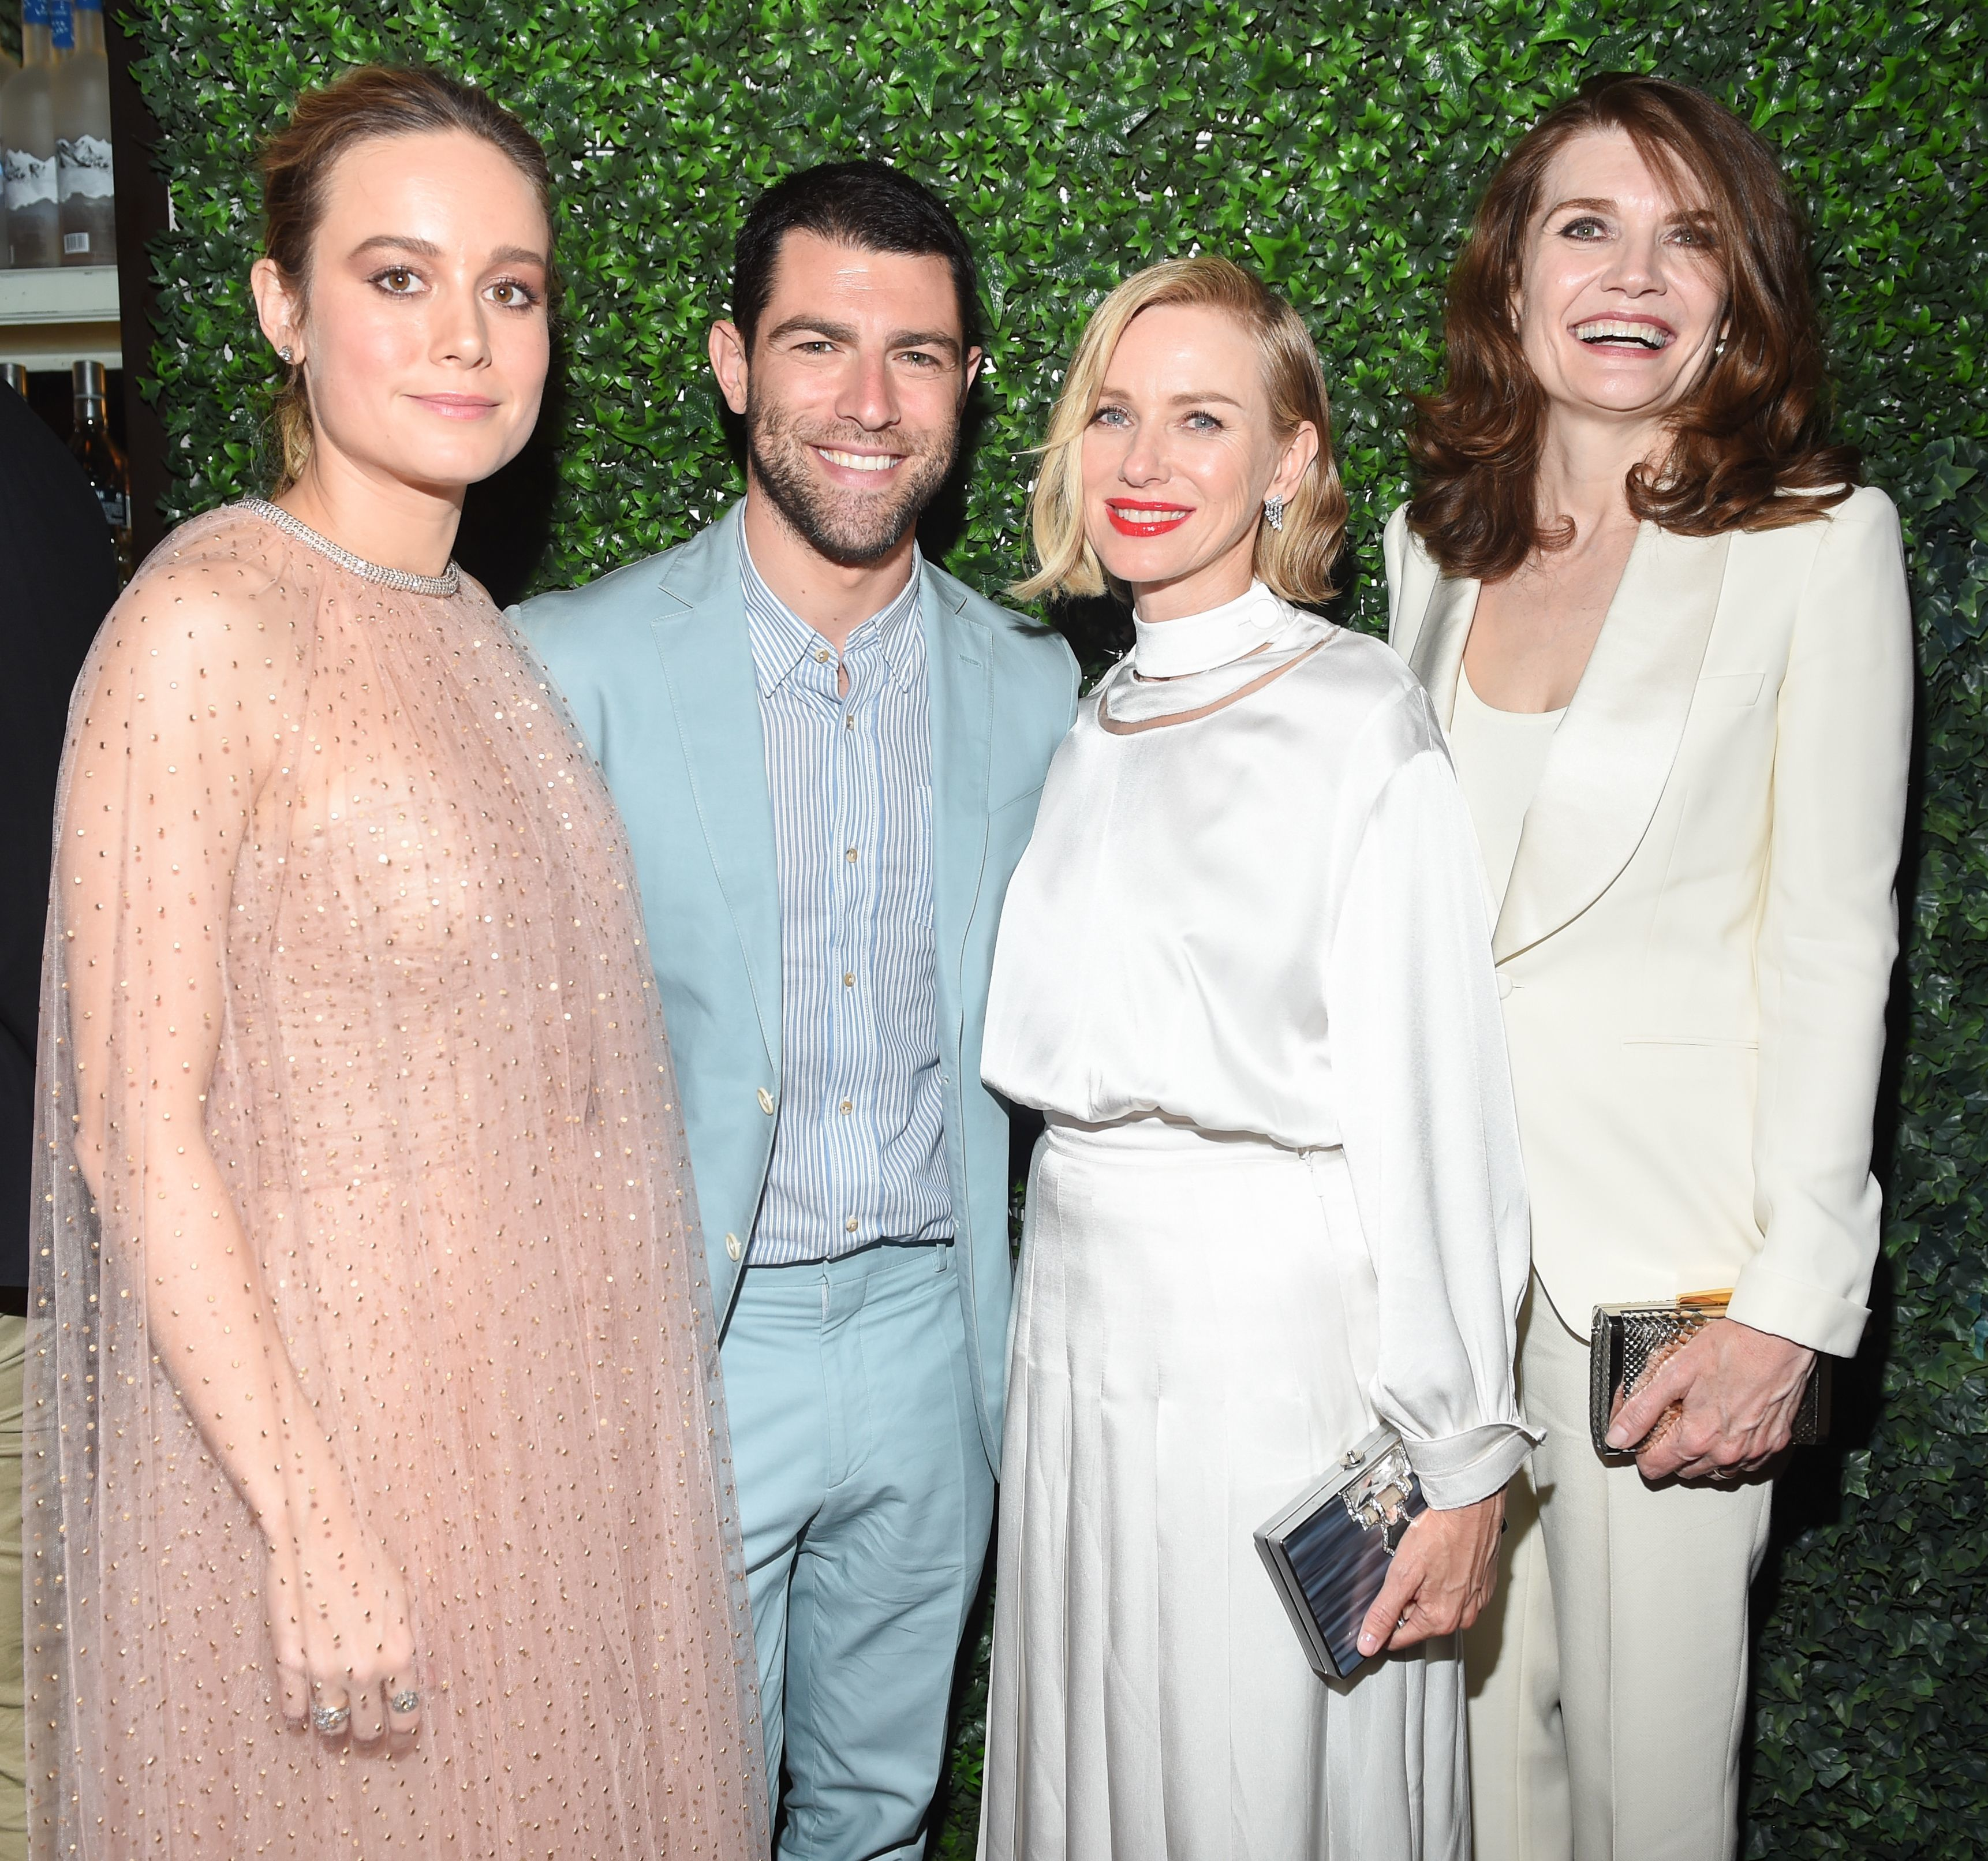 """Brie Larson, Max Greenfield, Naomi Watts, and Jeannette Walls attend """"The Glass Castle"""" film premiere after party in New York City on Aug. 9, 2017."""